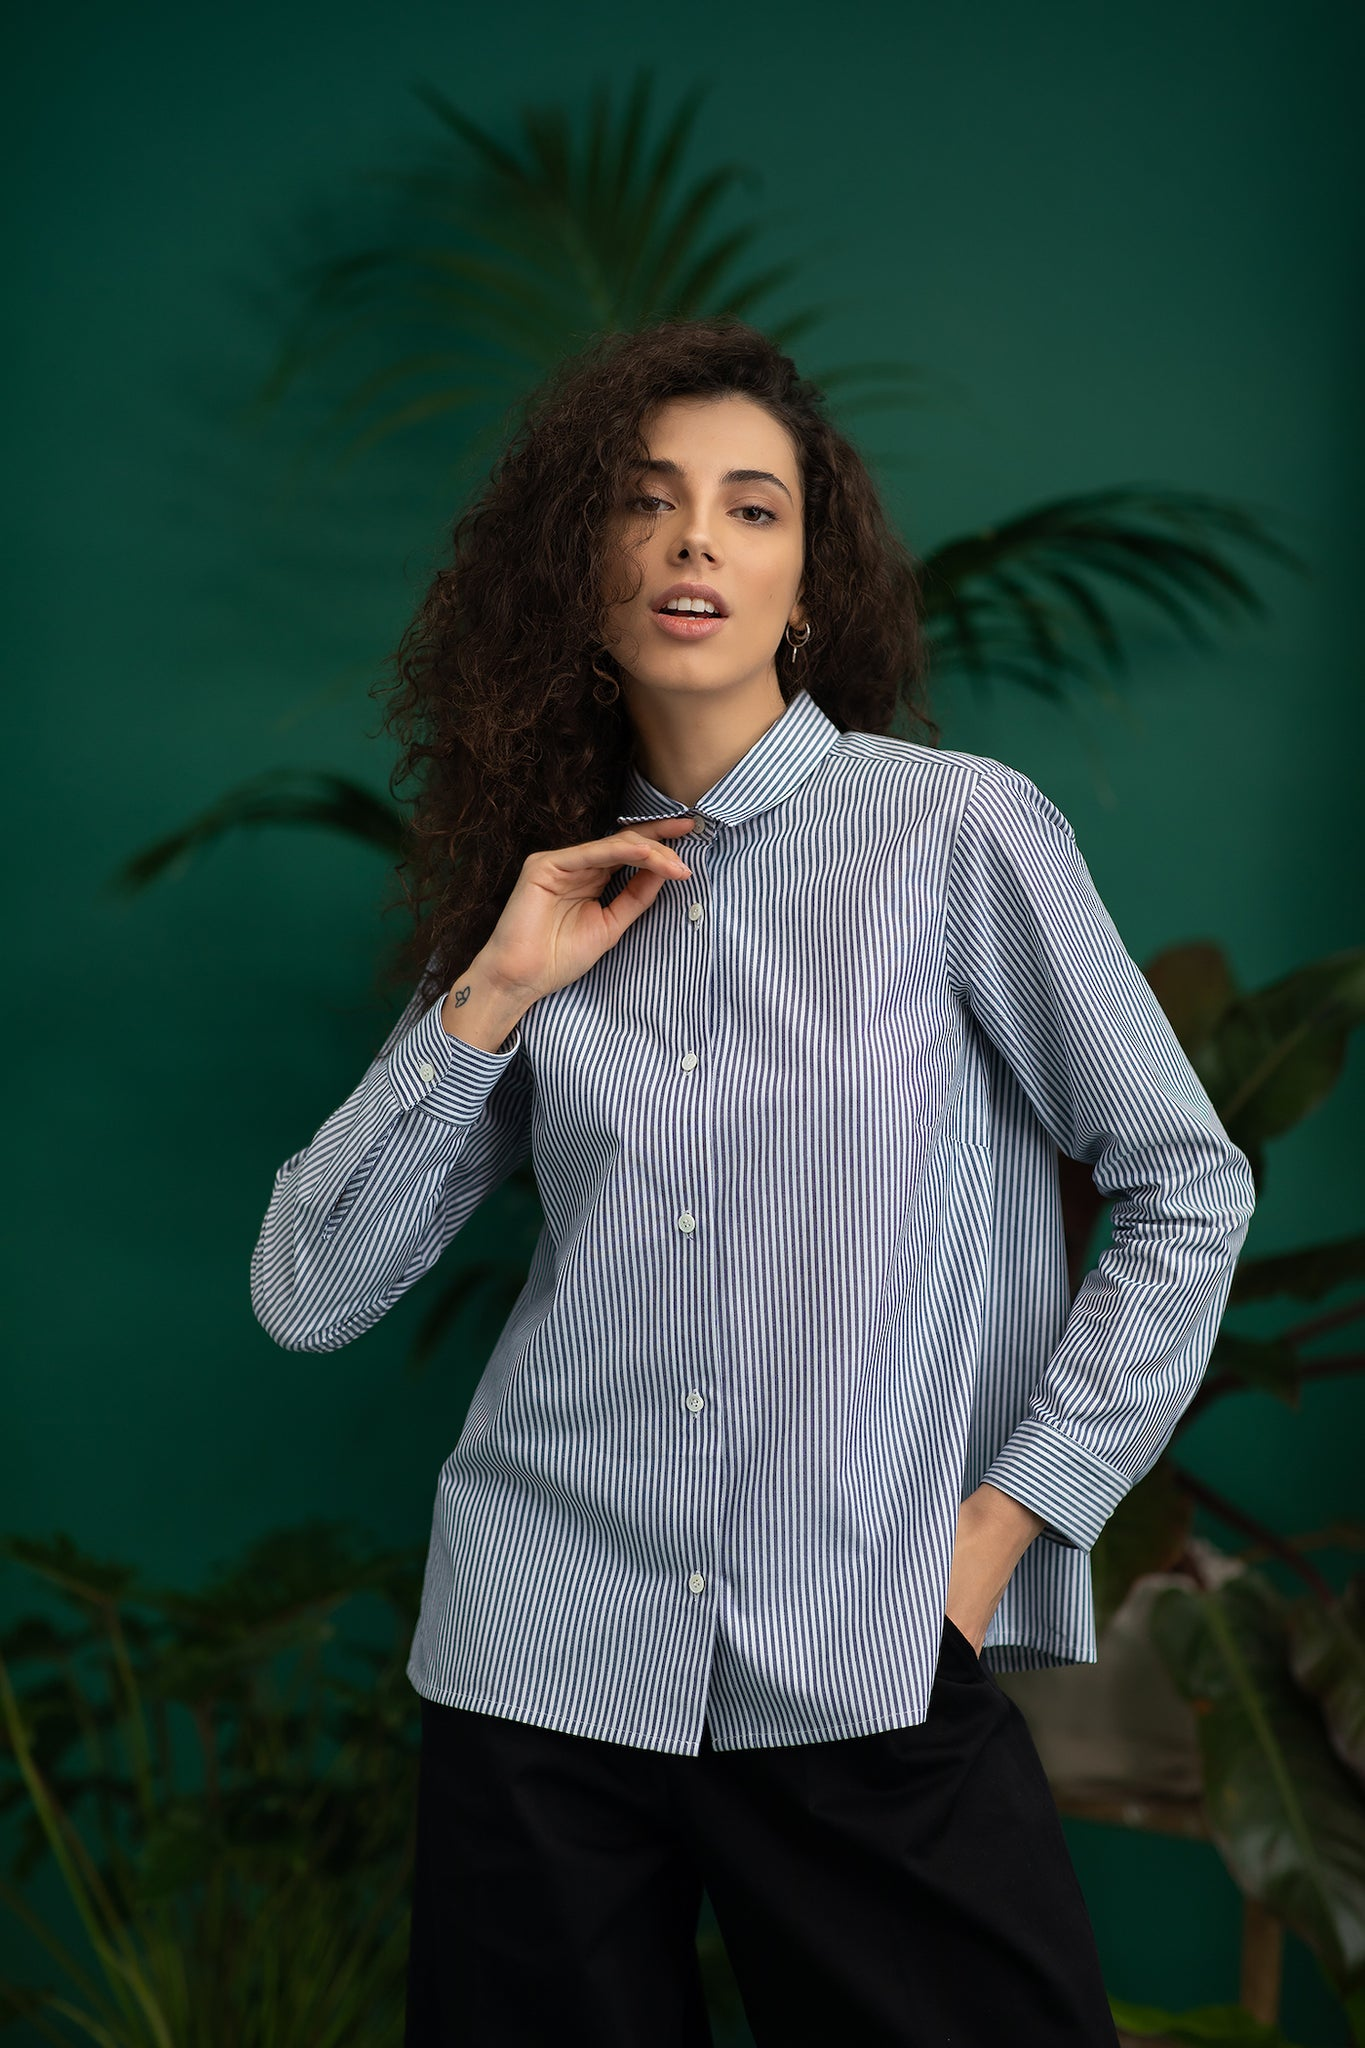 A model in striped white-blue ecological shirt - MILANO. Ethical and sustainable ECO fair fashion